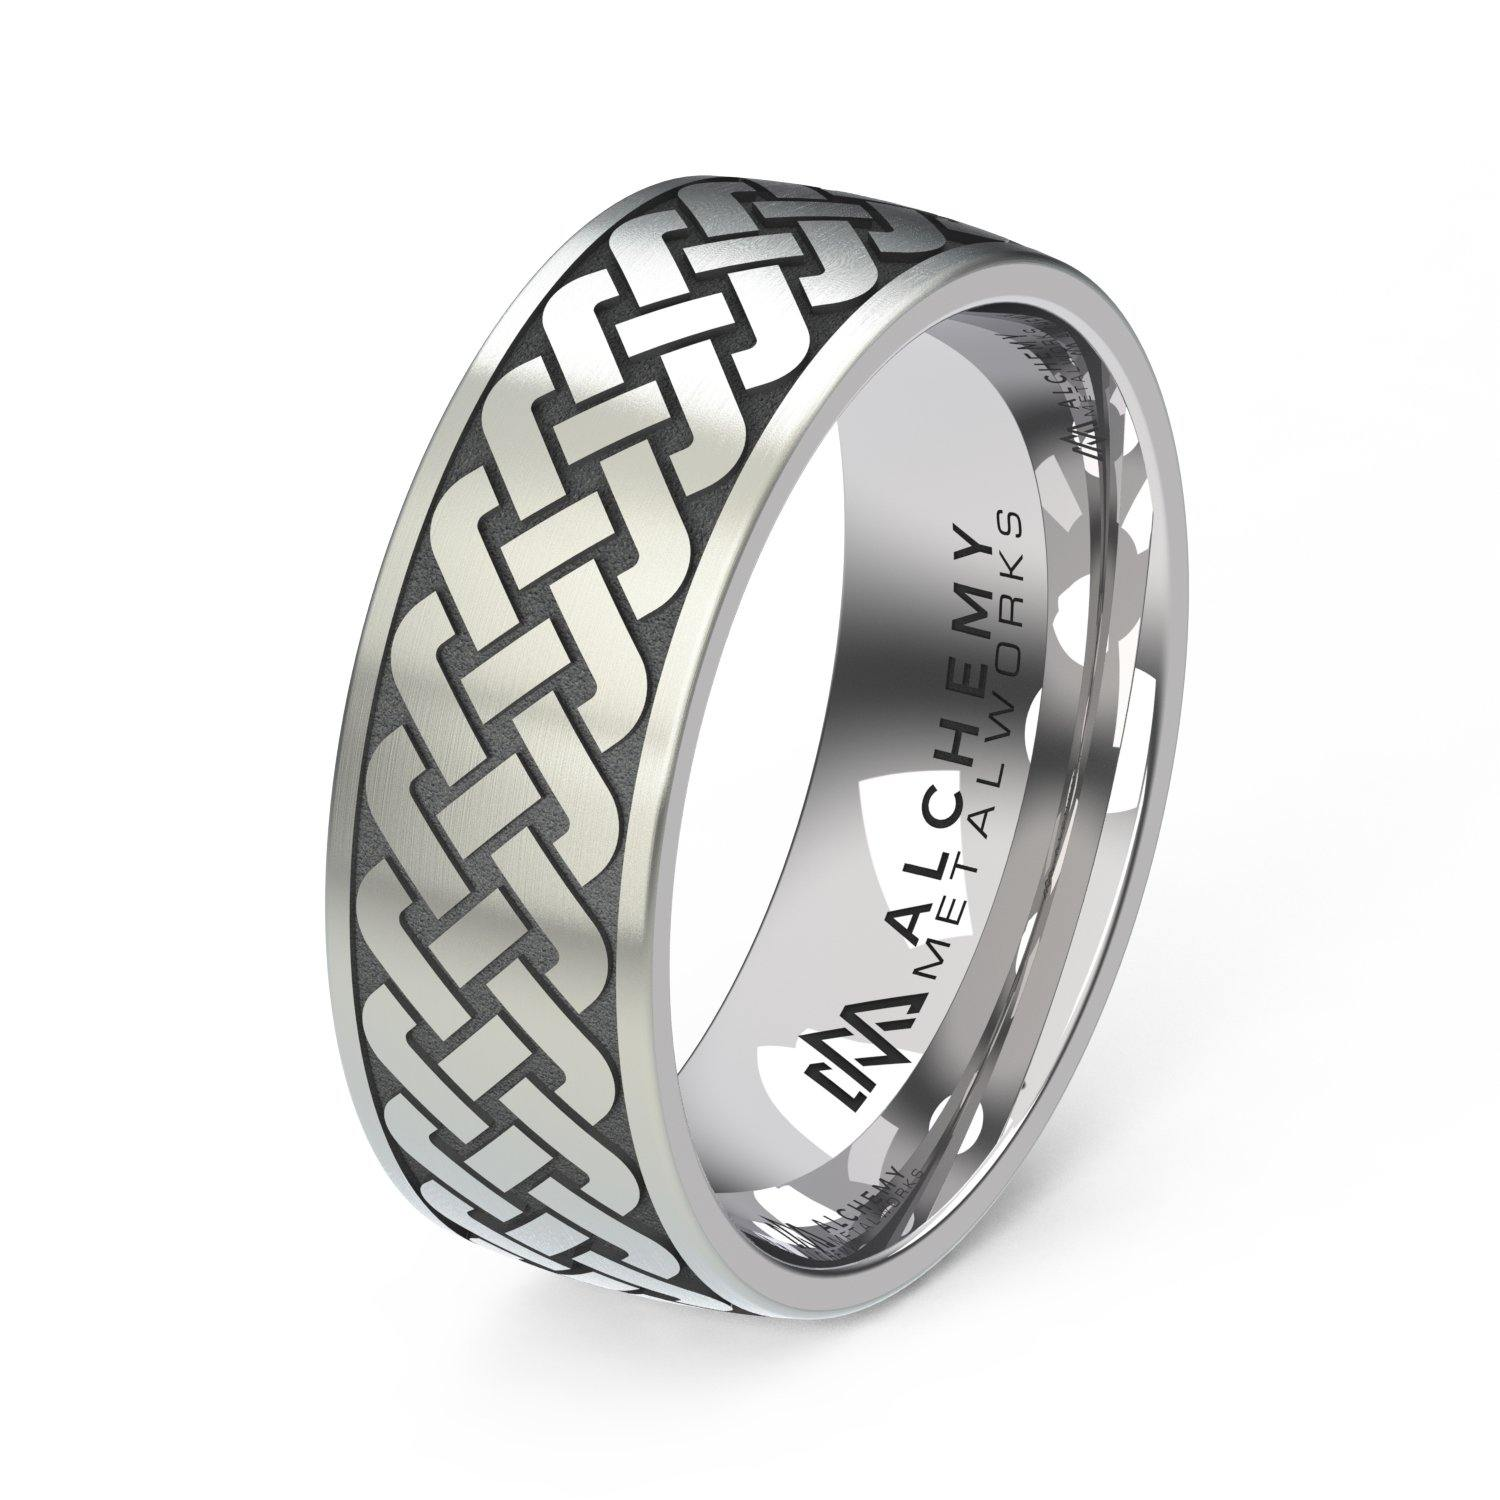 Laser Engraved Titanium Ring - Celtic Knot